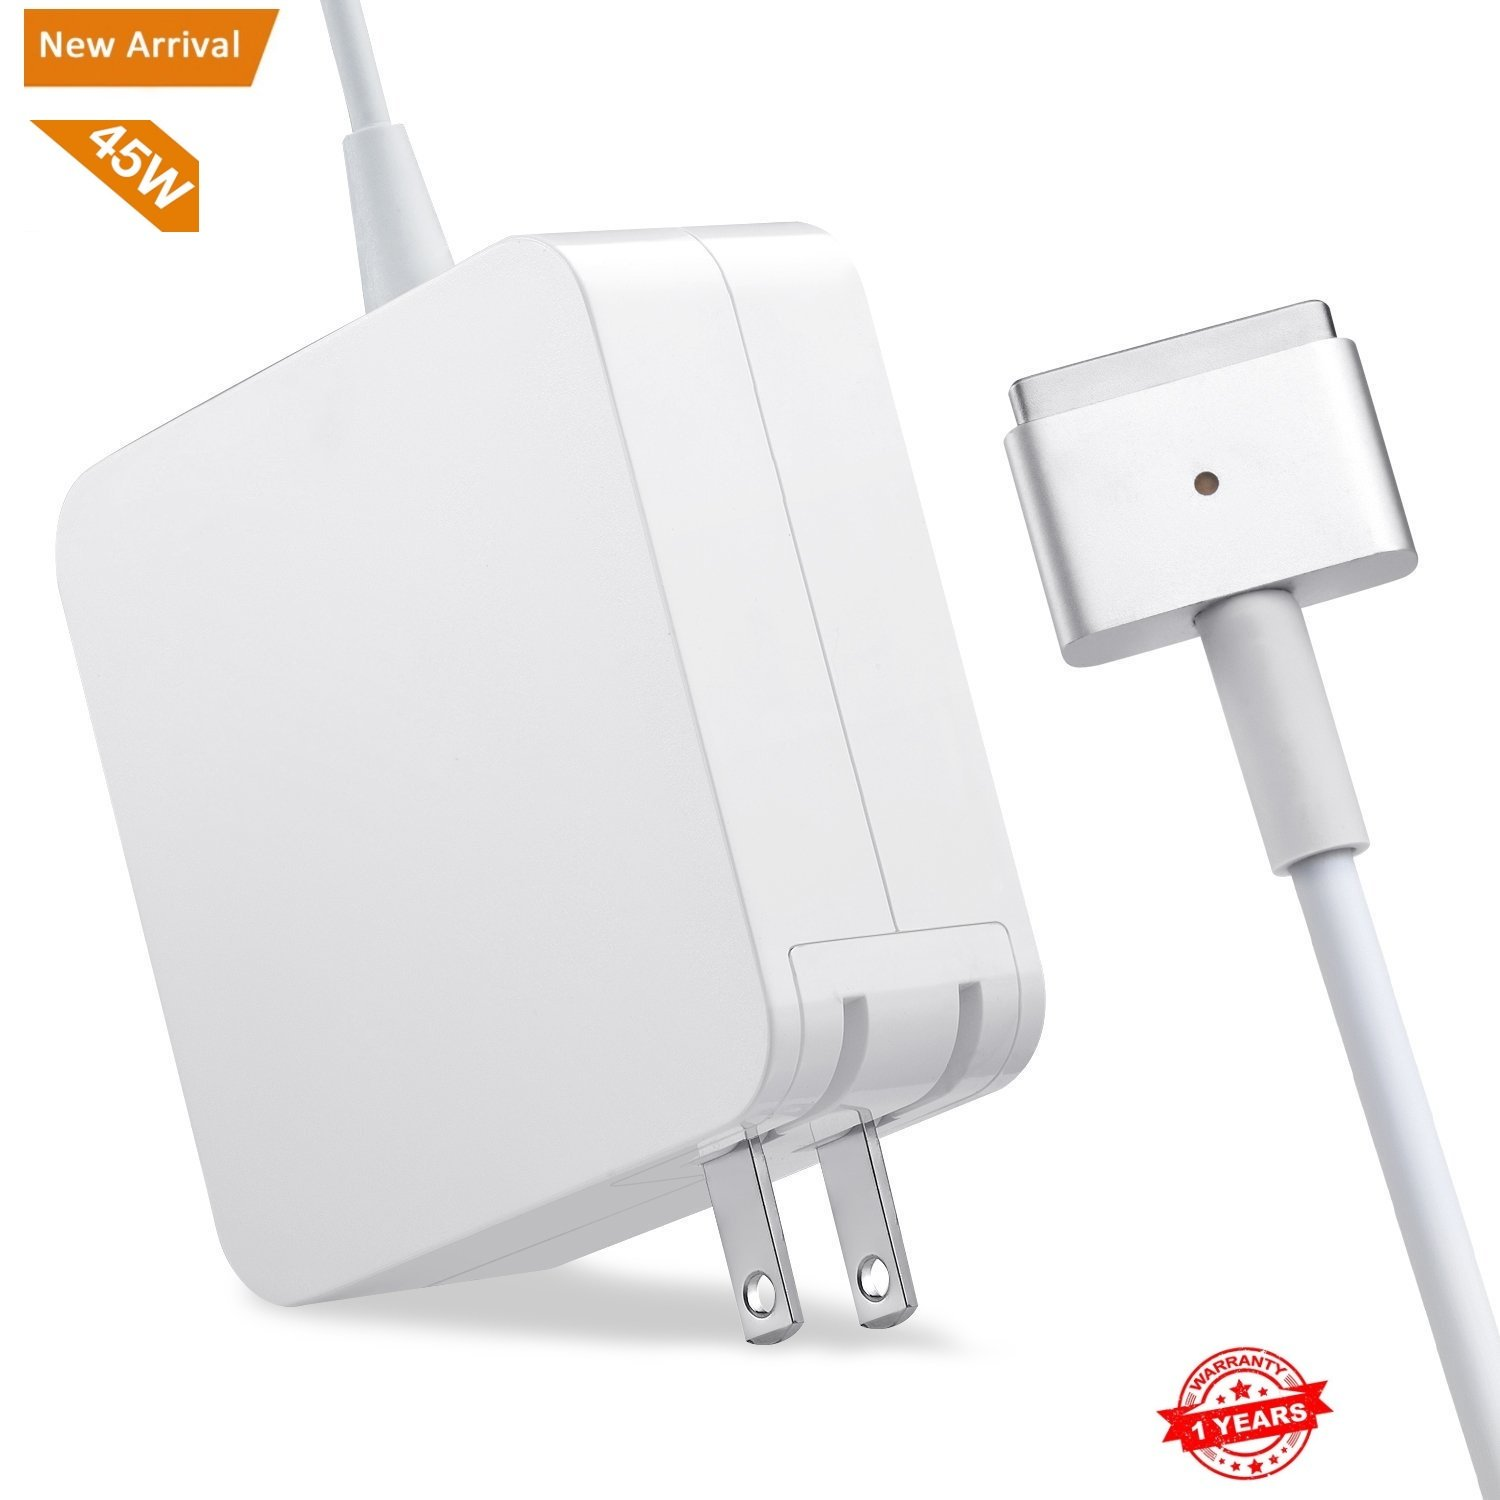 Macbook Air Charger,Replacement 45W Magsafe 2 Power Adapter T-Tip Magnetic Connector Charger for MacBook Air 11 inch and 13 inch (45W-T)